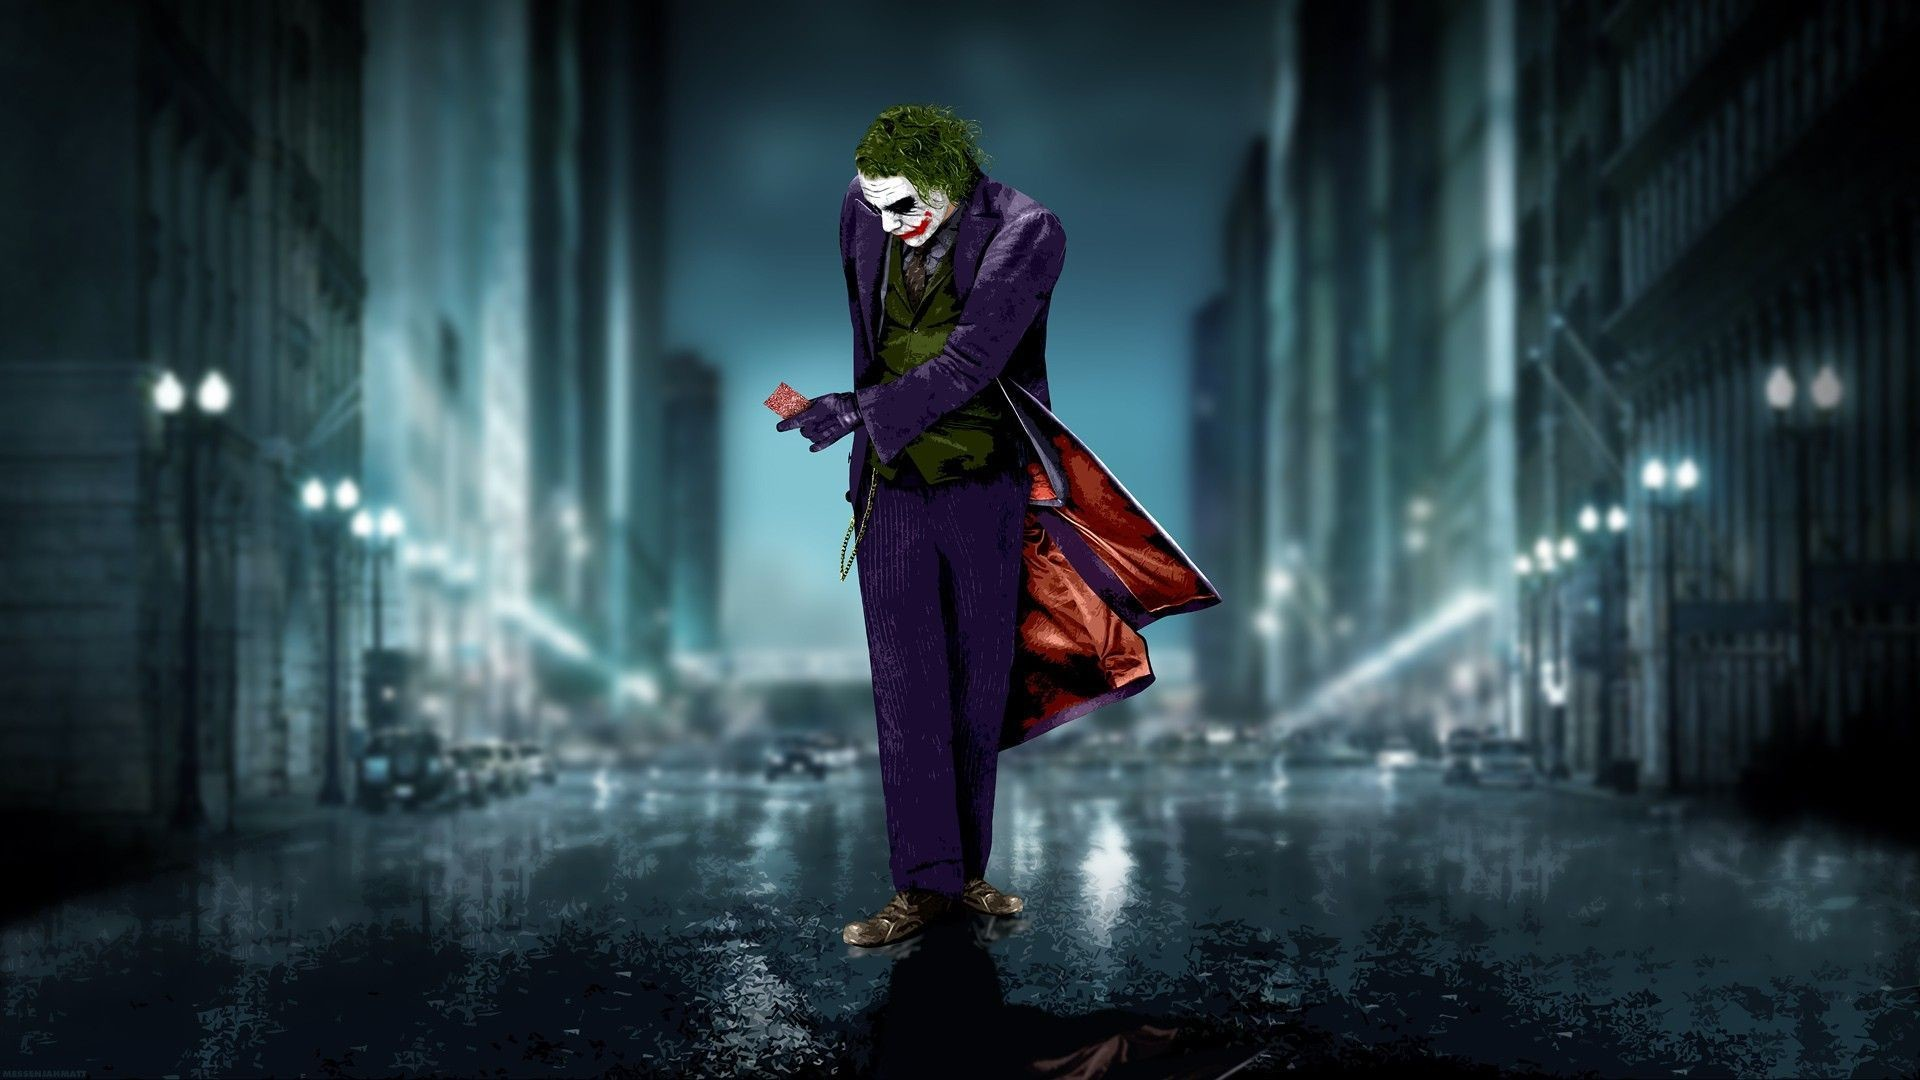 1920x1080 <b>Joker</b> HD <b>Wallpapers</b